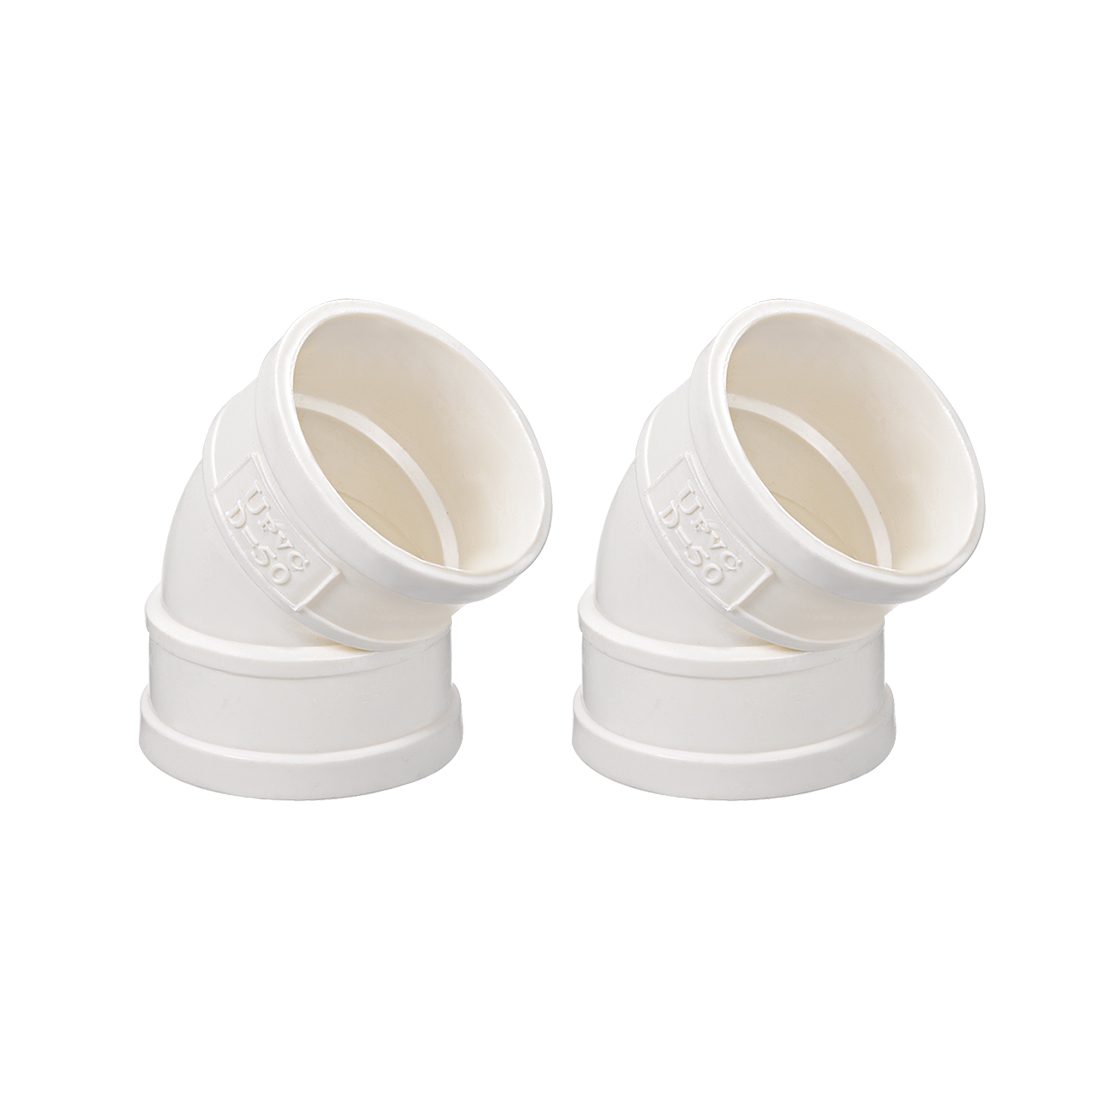 PVC Pipe Fitting 45 Degree Elbow Schedule 40 White 1-1/2-Inch Socket 2pcs